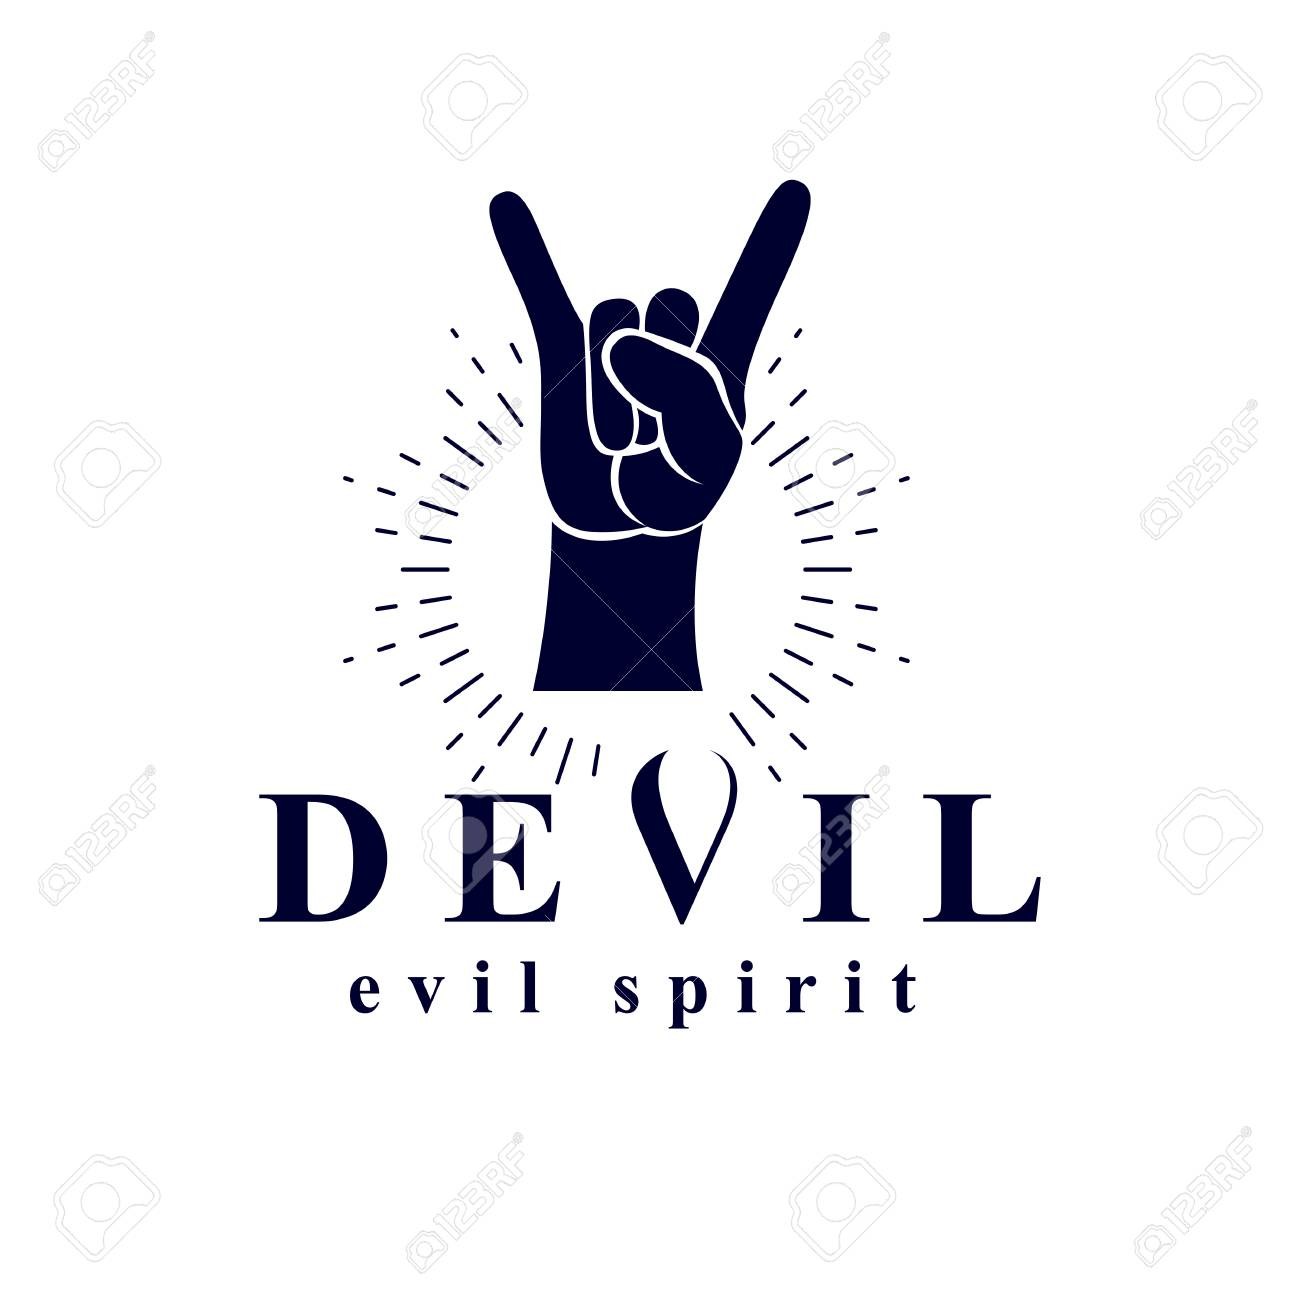 Rock on hand sign created with a devil inscription evil spirit rock on hand sign created with a devil inscription evil spirit logo stock vector biocorpaavc Gallery